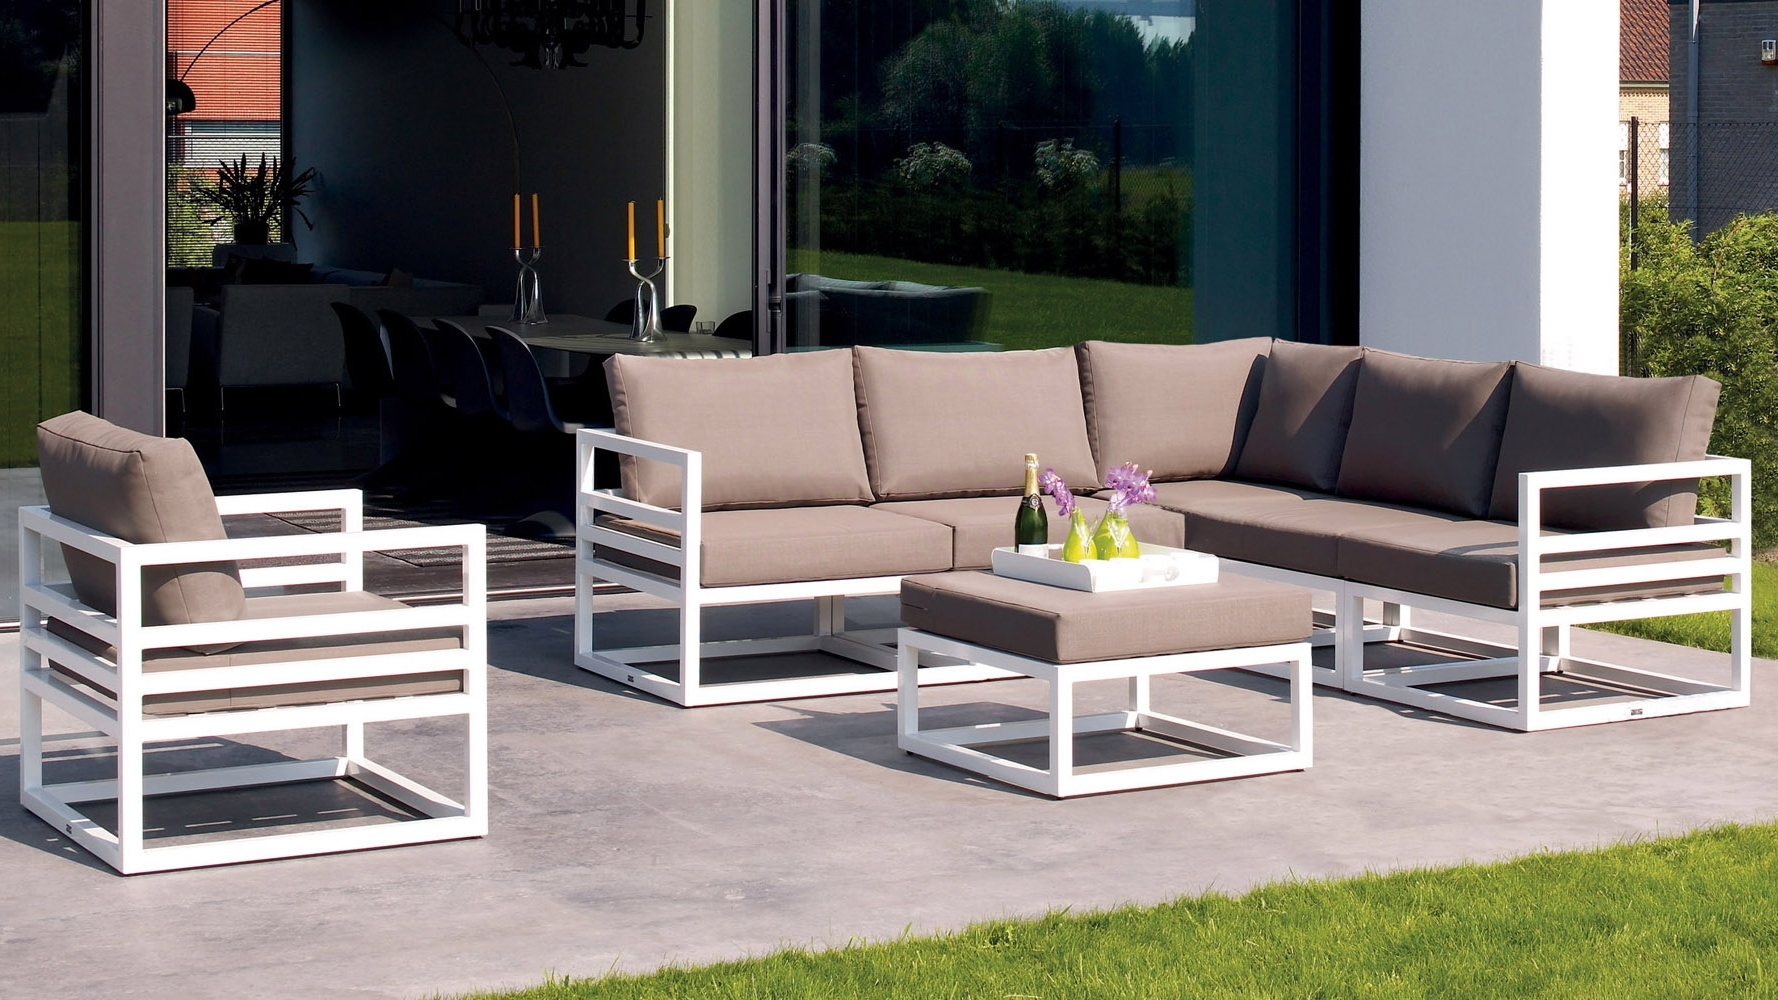 Chaise Lounge Sets With Famous Outdoor Lounge Furniture On Sale Outside Chaise Lounge Best Deals (View 3 of 15)